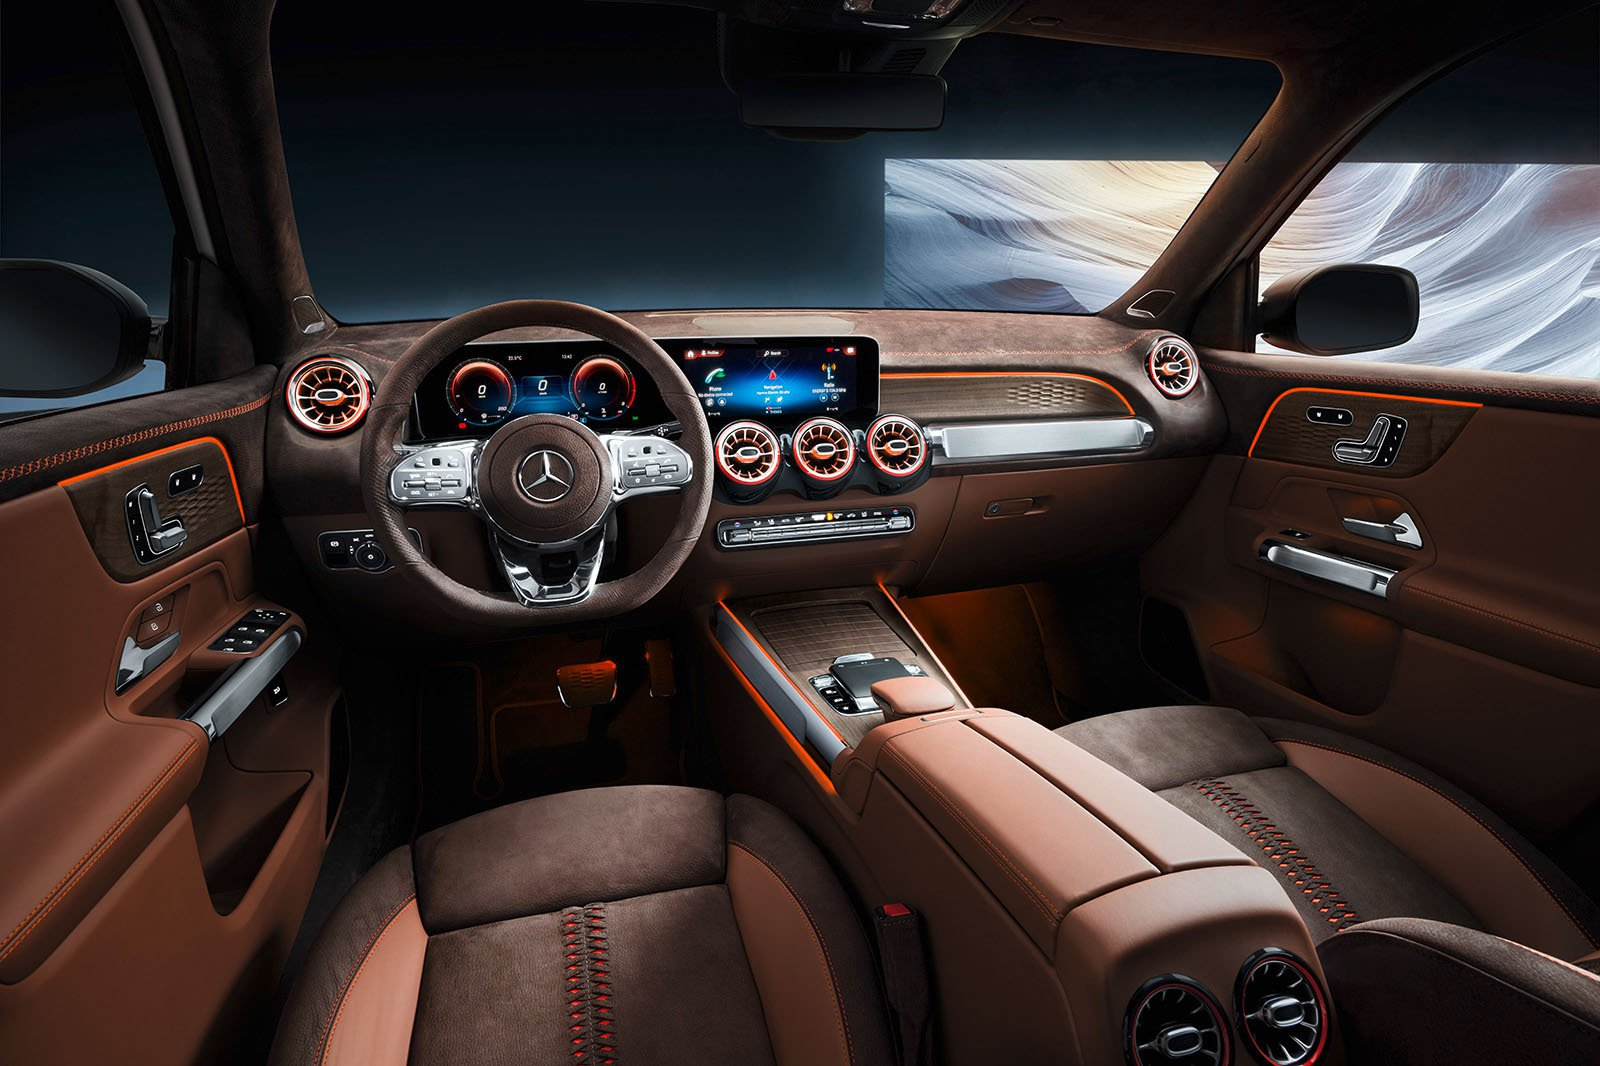 Mercedes GLB interior